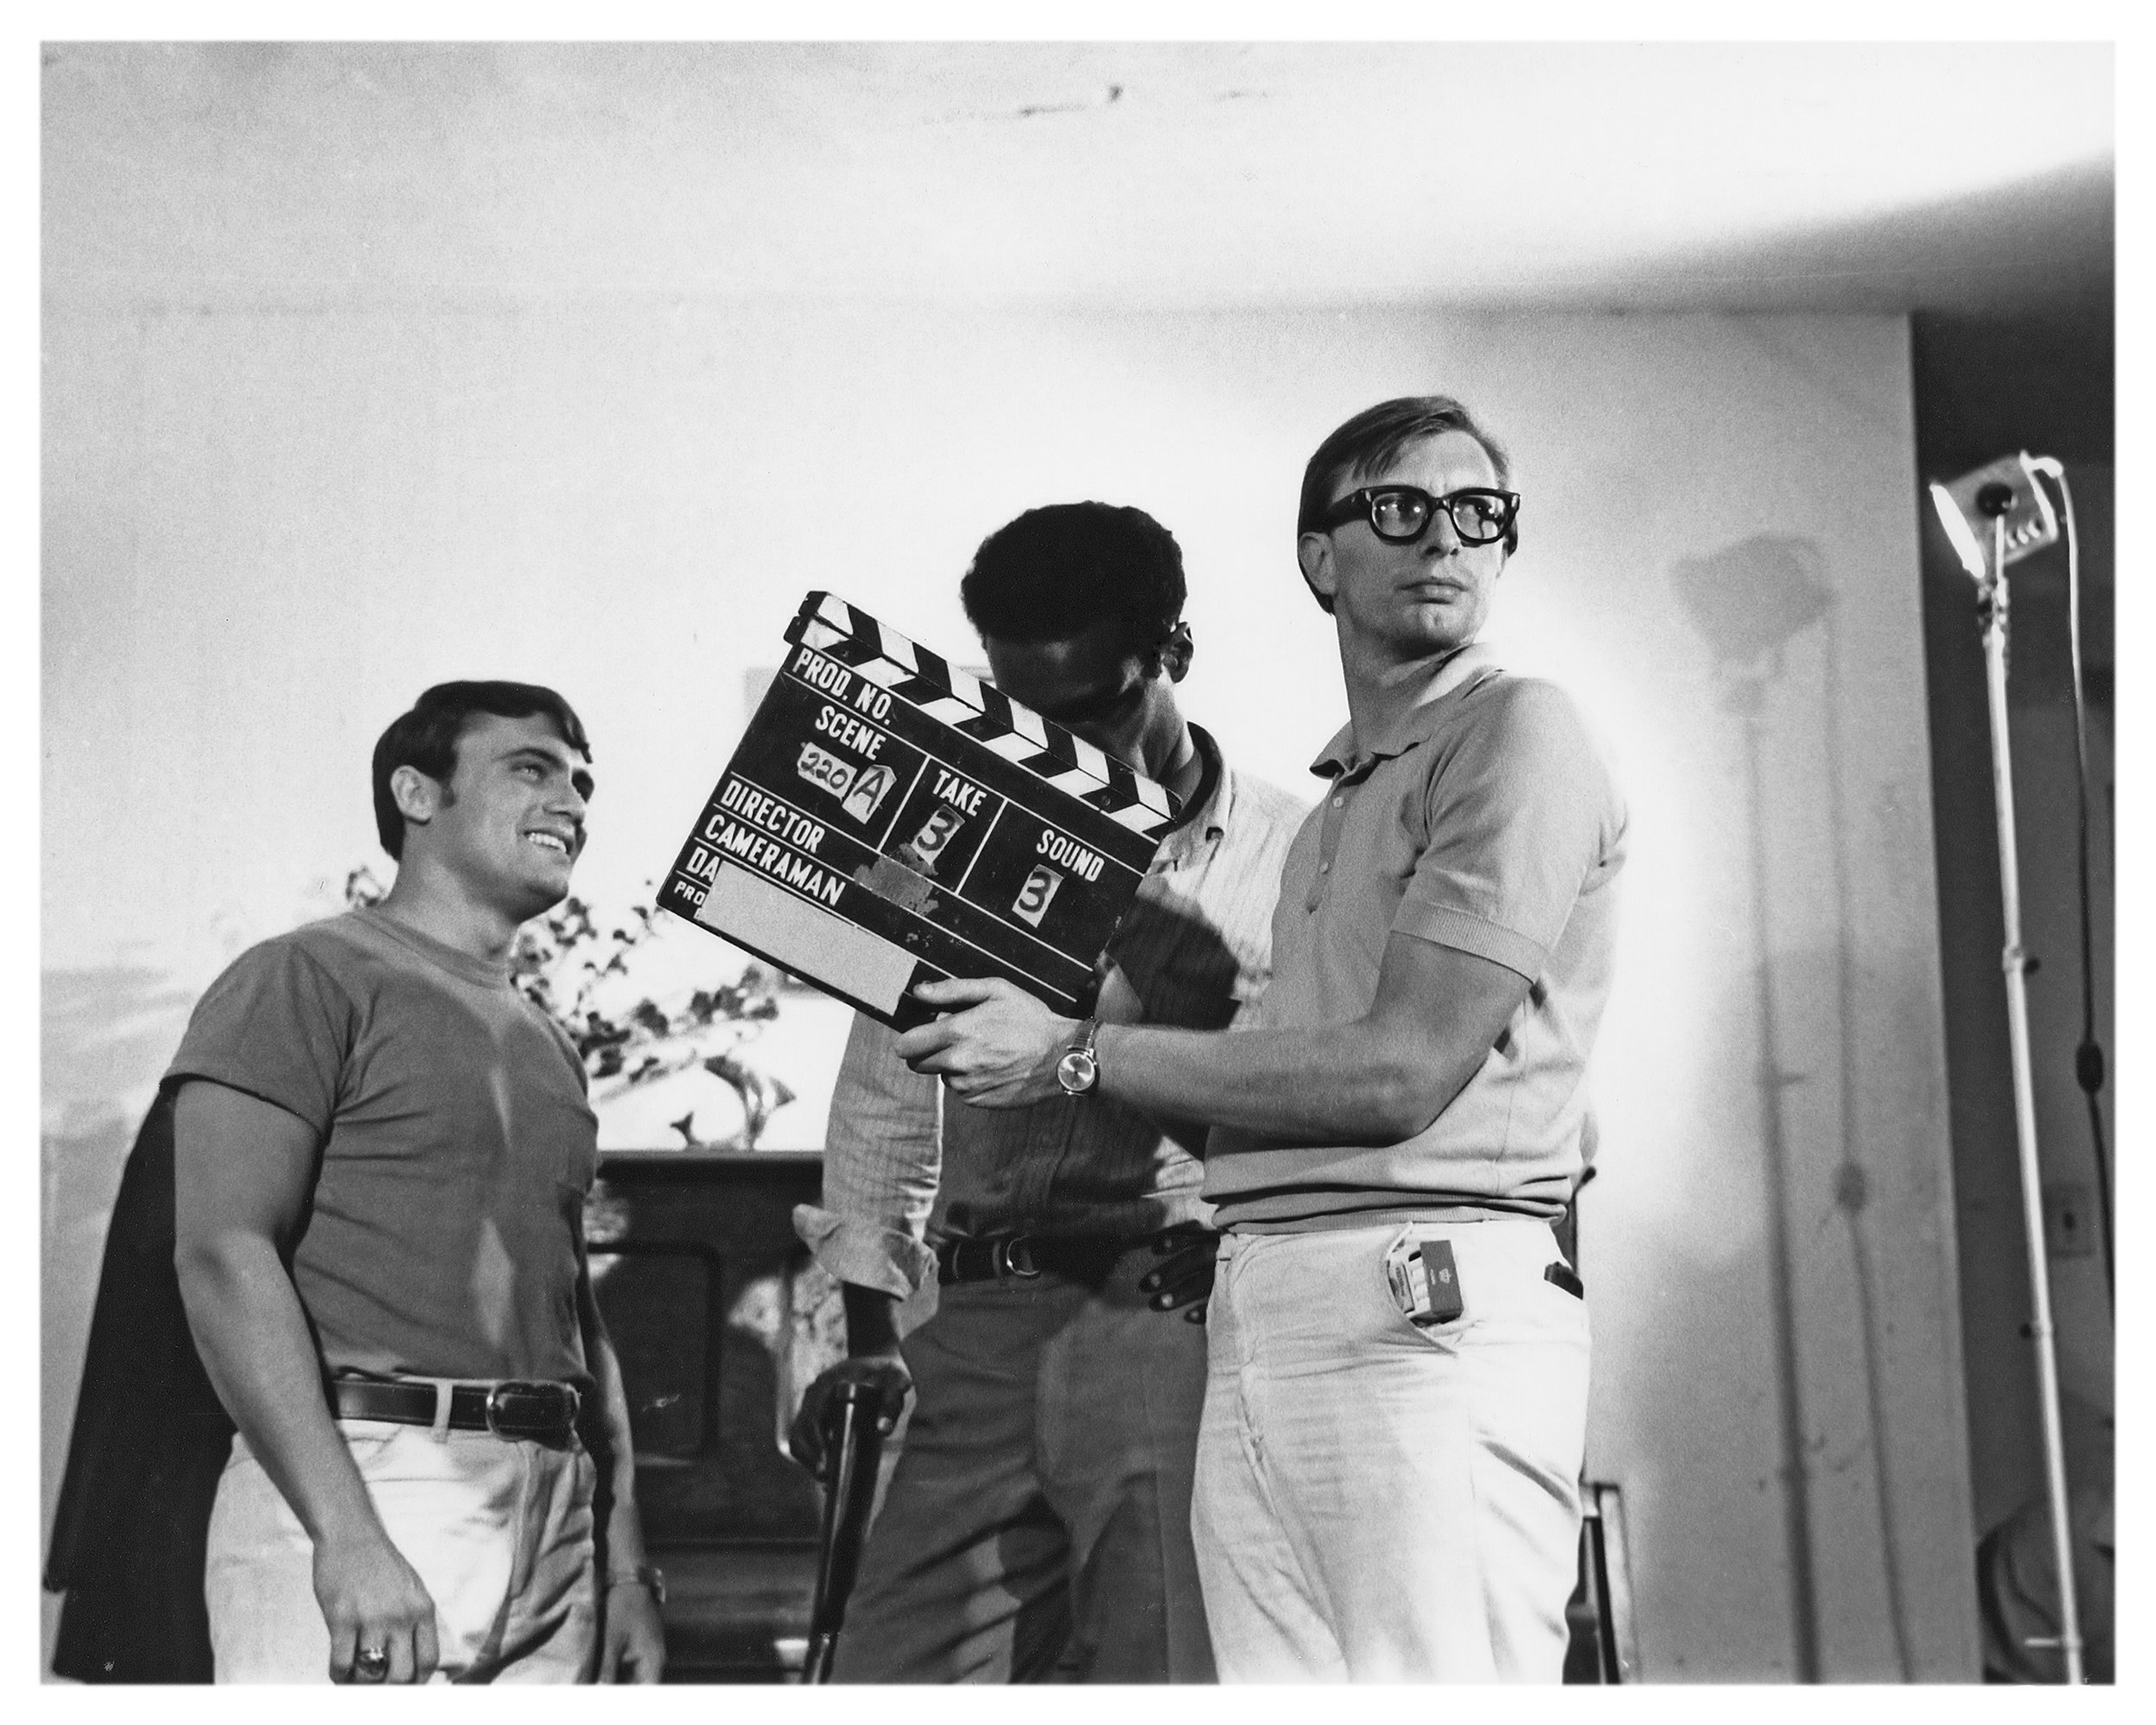 Russ Streiner with clapboard.jpg